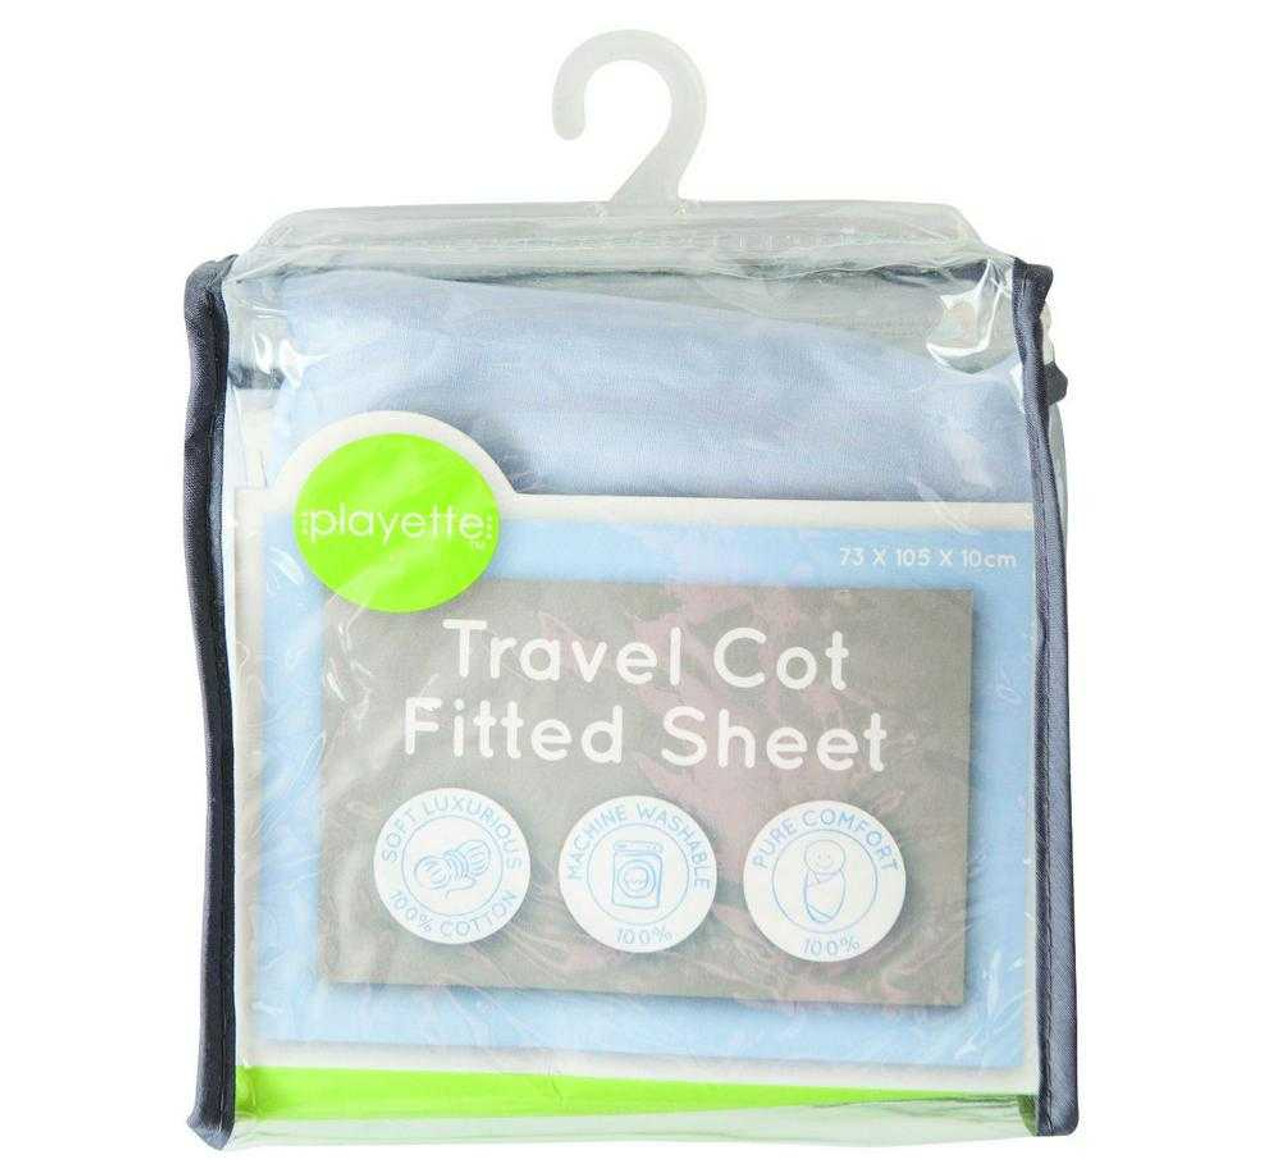 Playette Travel Cot Fitted Sheet Porta Cot Manchester 17.95